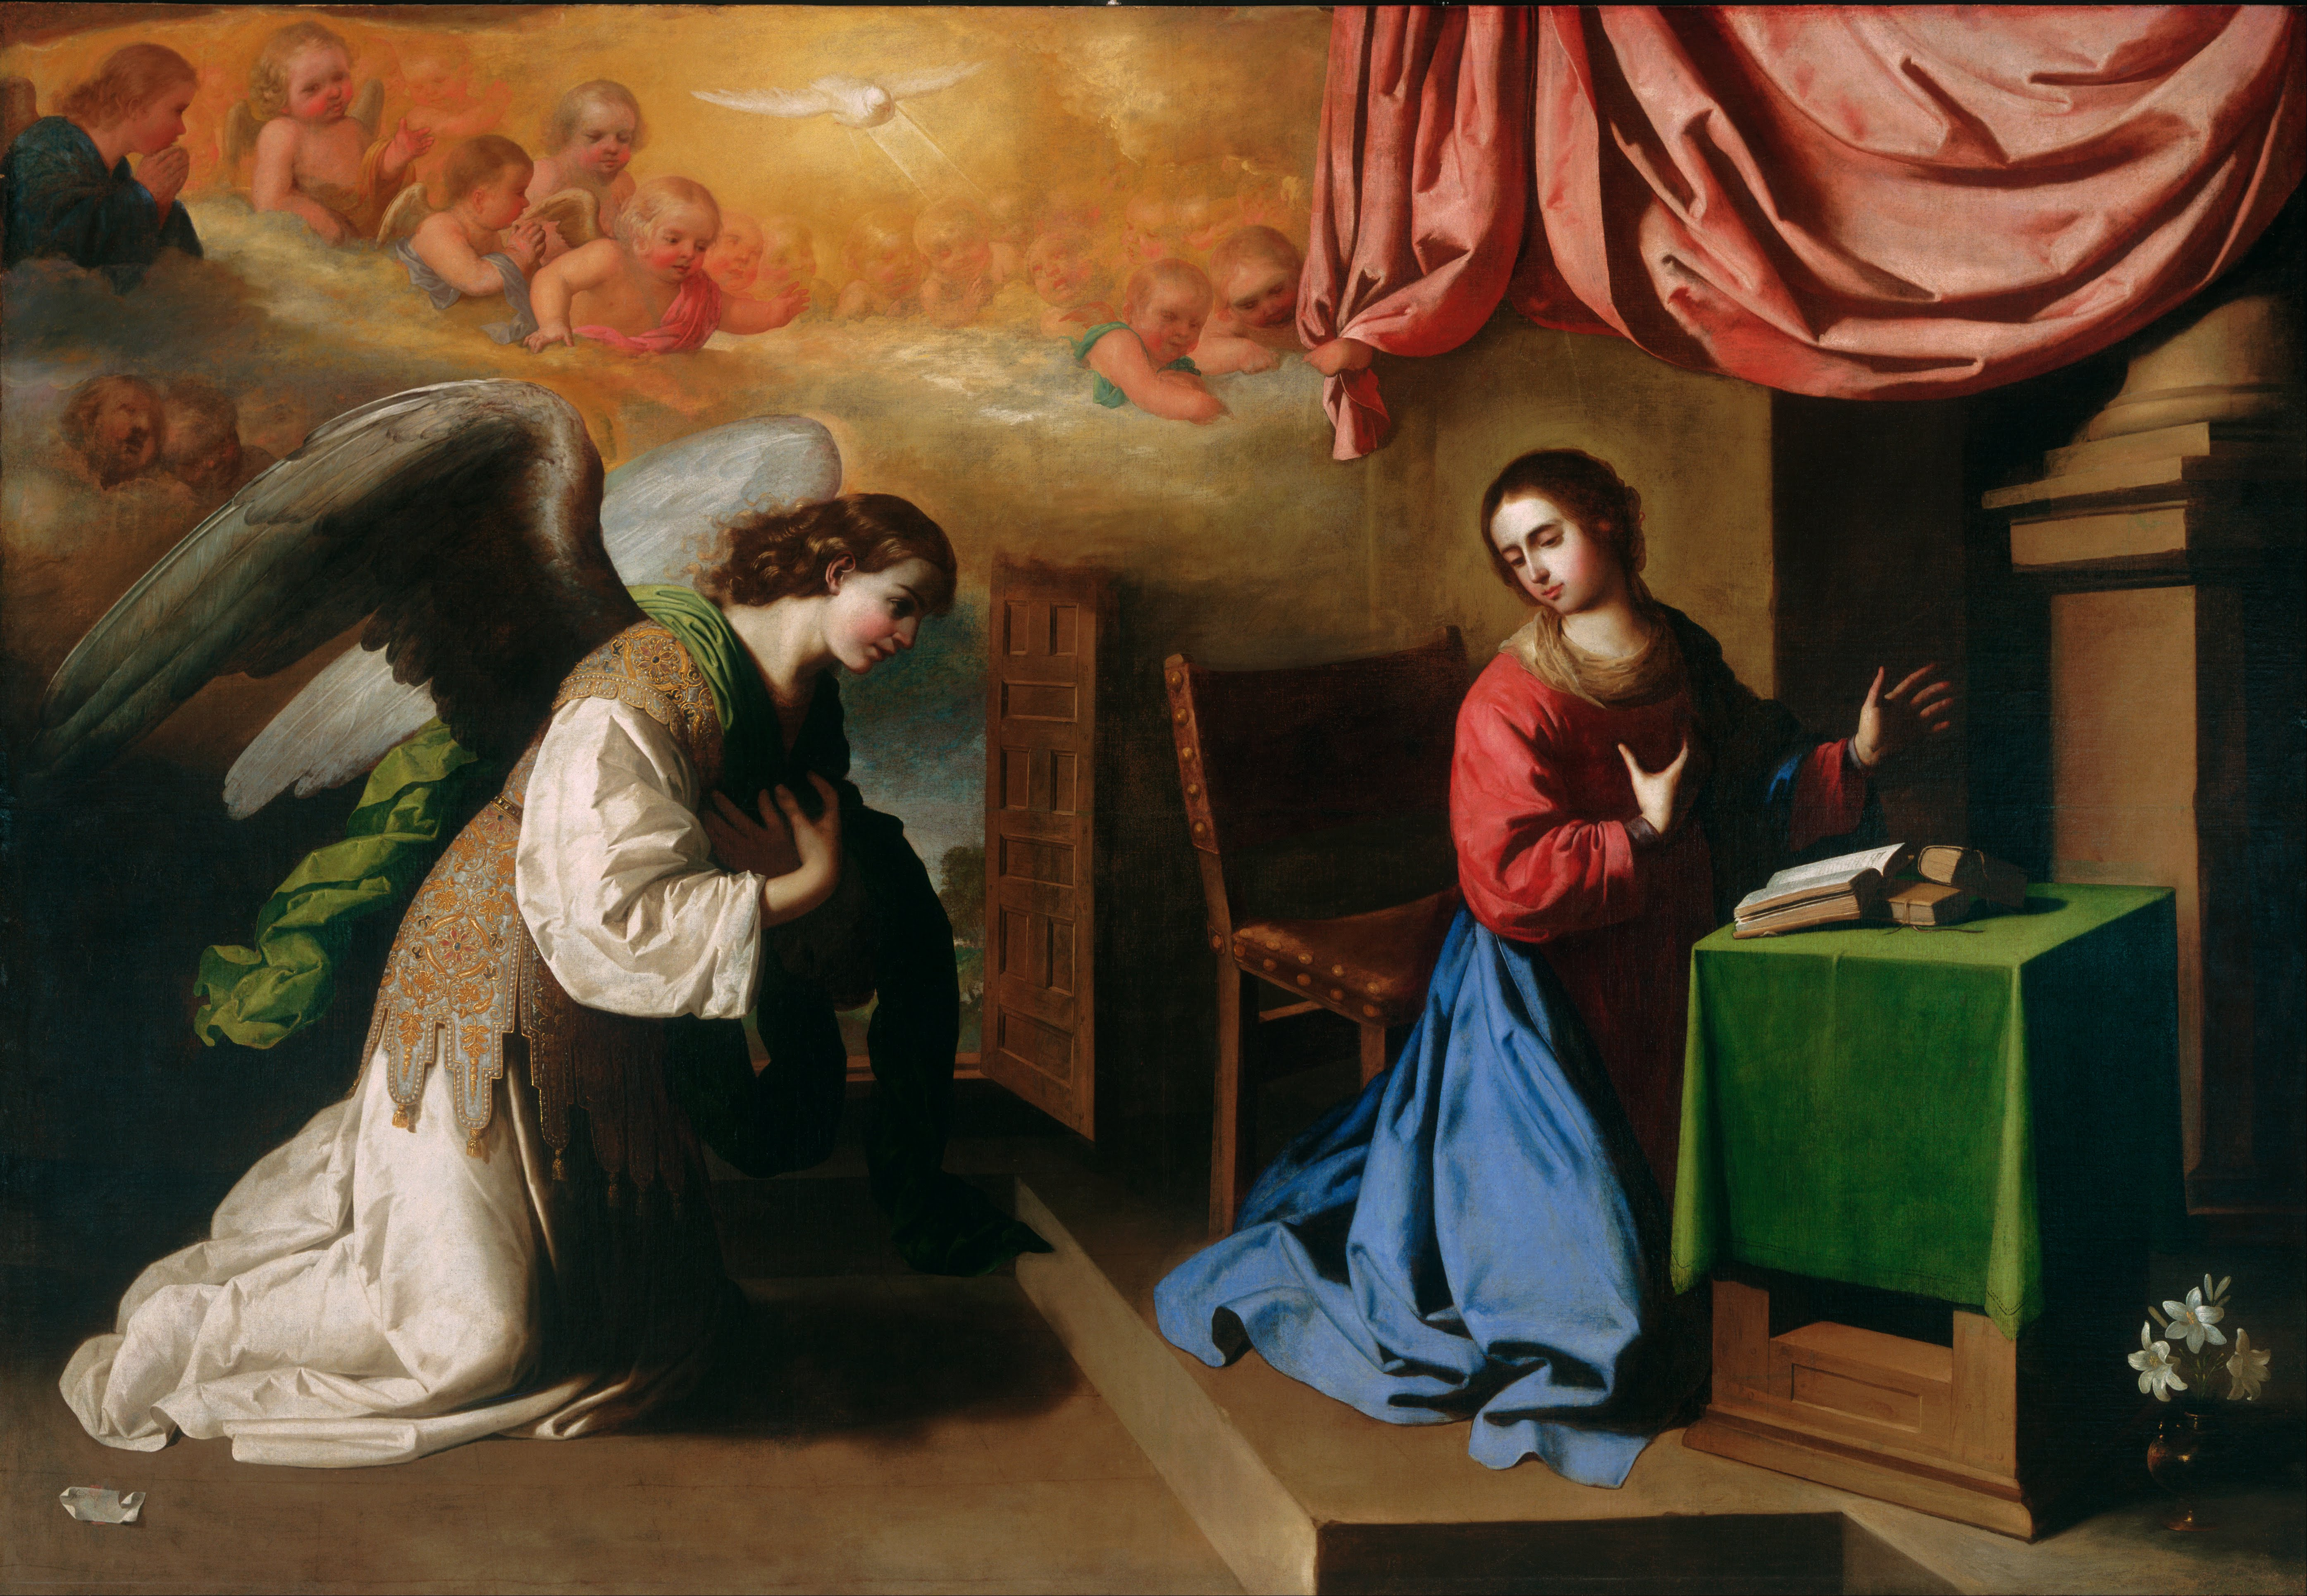 an analysis of the annunciation a painting by francisco de zurbaran A new painting of saint francis attributed to francisco de zurbarán (fig 1) has emerged from a private estate in america 1 the original version, which was known through a copy in the collection of the santa barbara museum of art, provides an opportunity for a proper comparison to similar.